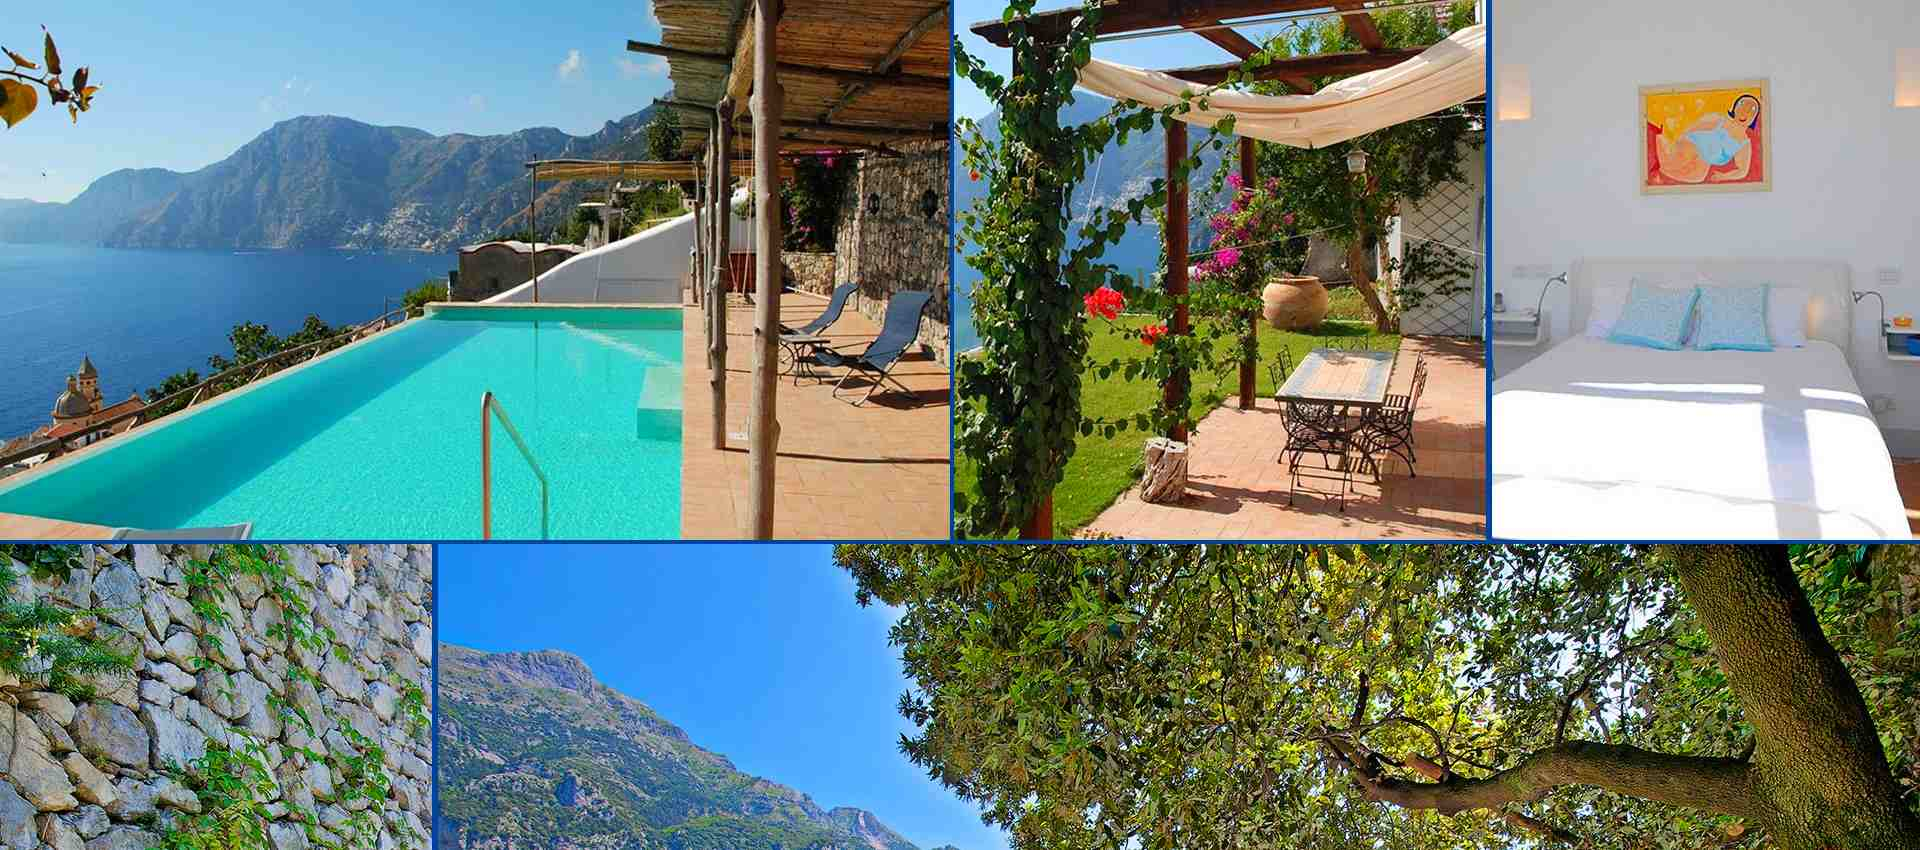 your expert in luxury villas in italy for holidays : dolcevita villas